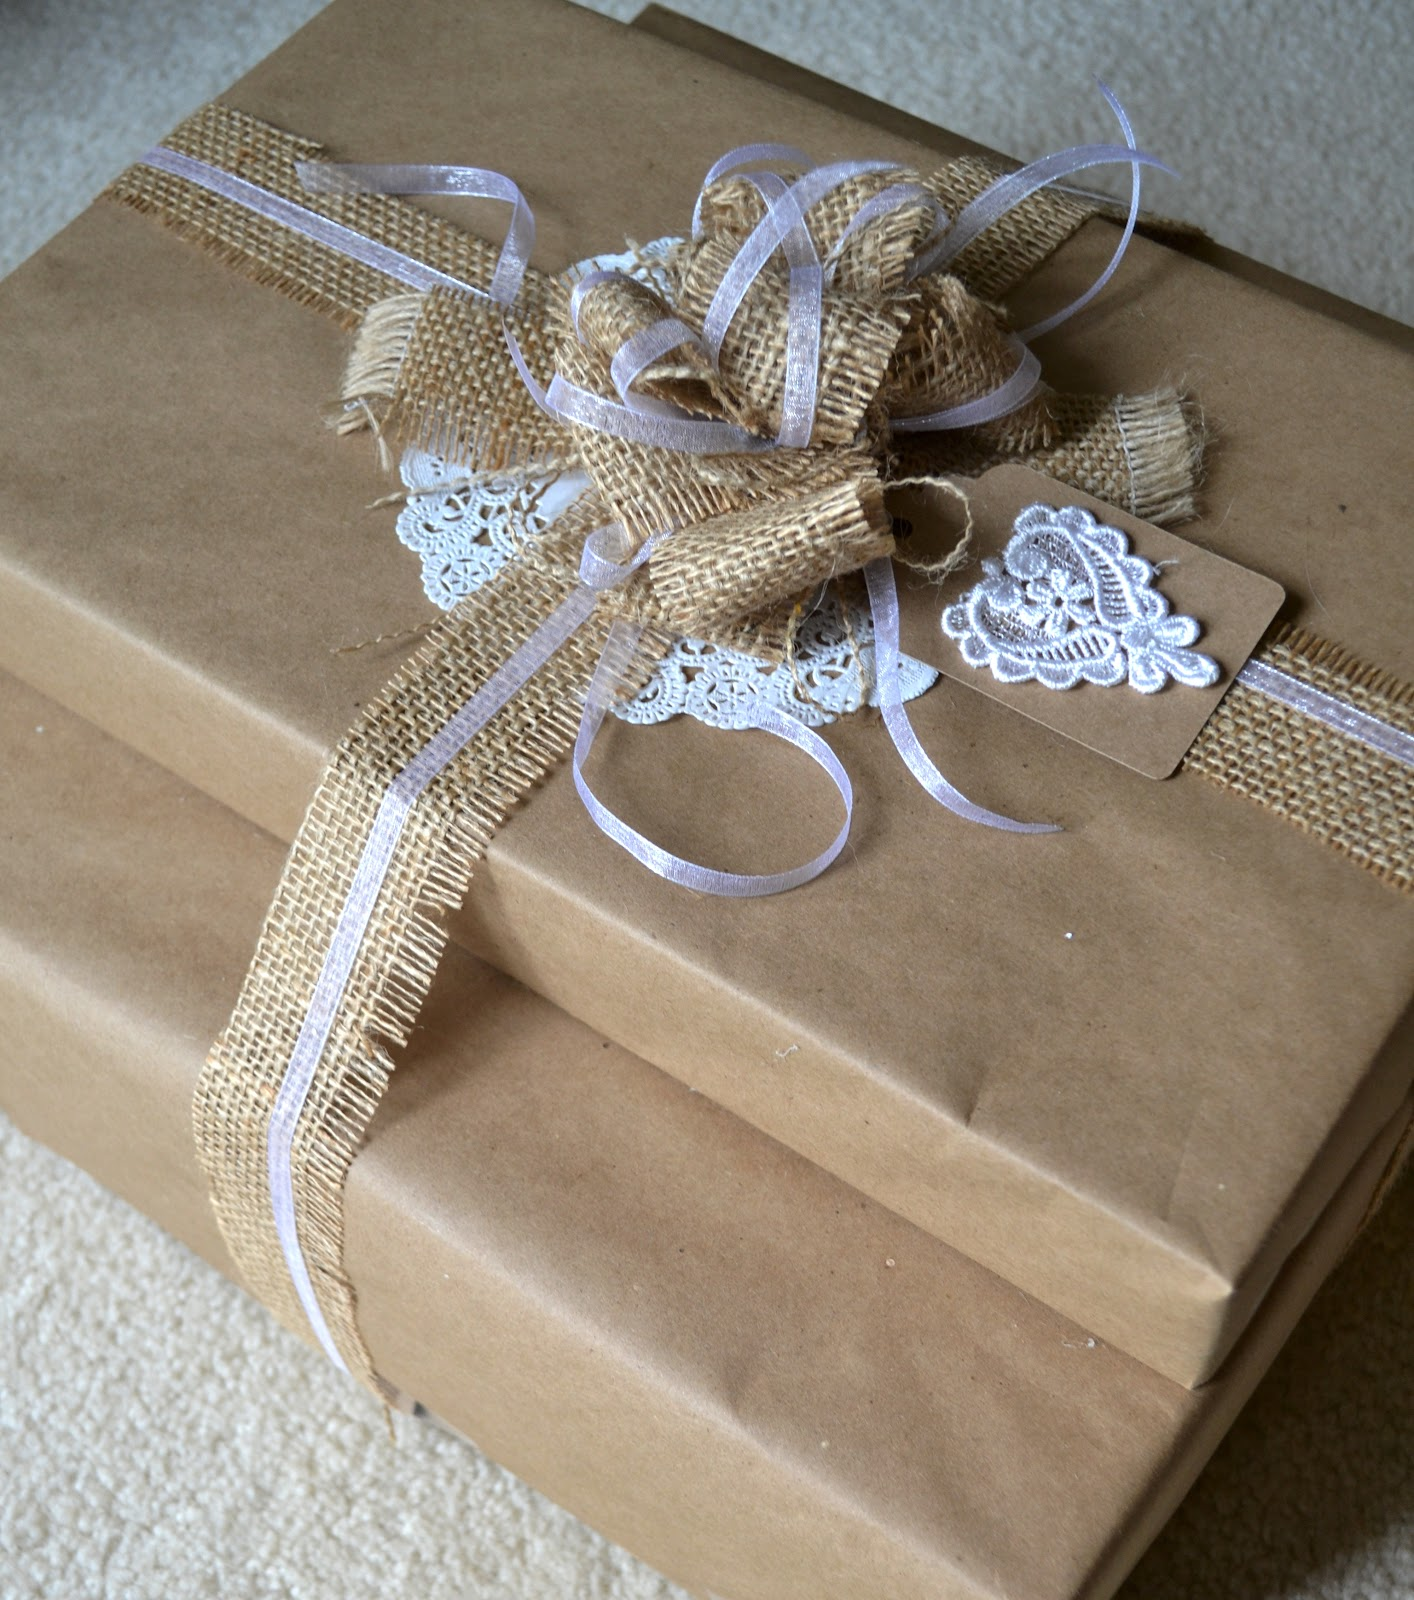 brown-paper-bag-gift-wrap.jpg